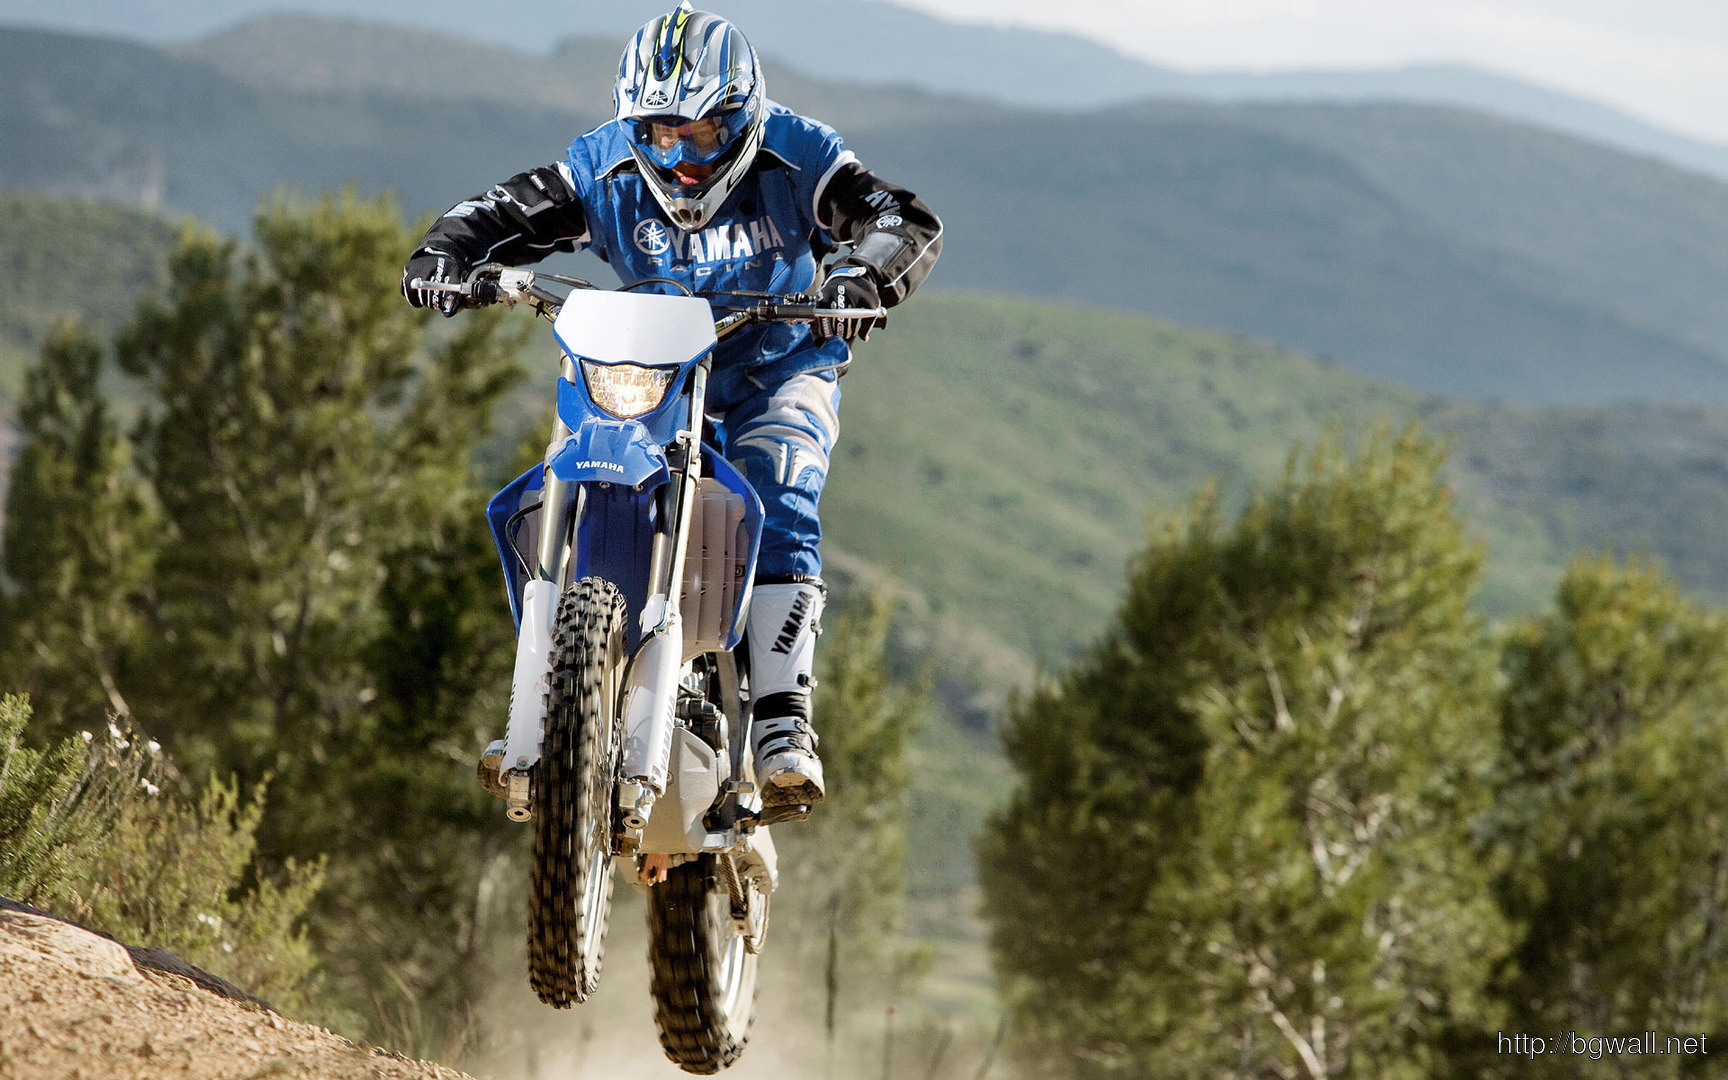 Download Yamaha Motocross Bike Wallpaper Full Size